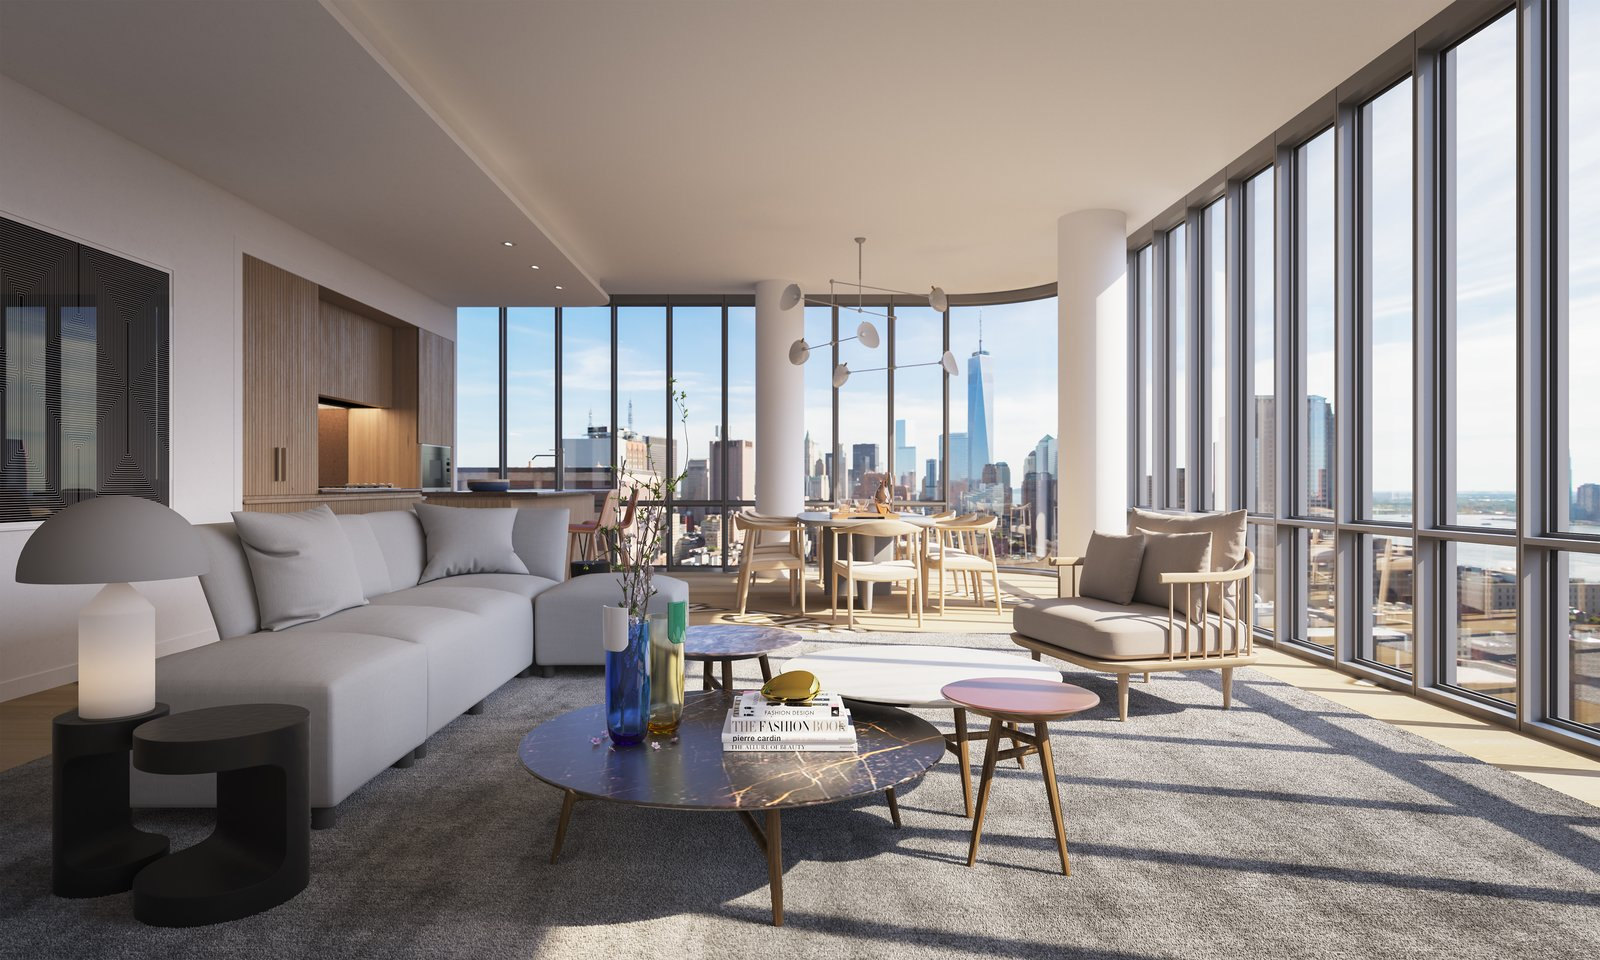 With interiors designed by RDAI, the 115 residences were created to optimize function, views, and utilization of space. The floors are made of six-inch white oak plank floors.  Photo 5 of 9 in Renzo Piano Building Workshop Brings a New Residential Destination to Soho